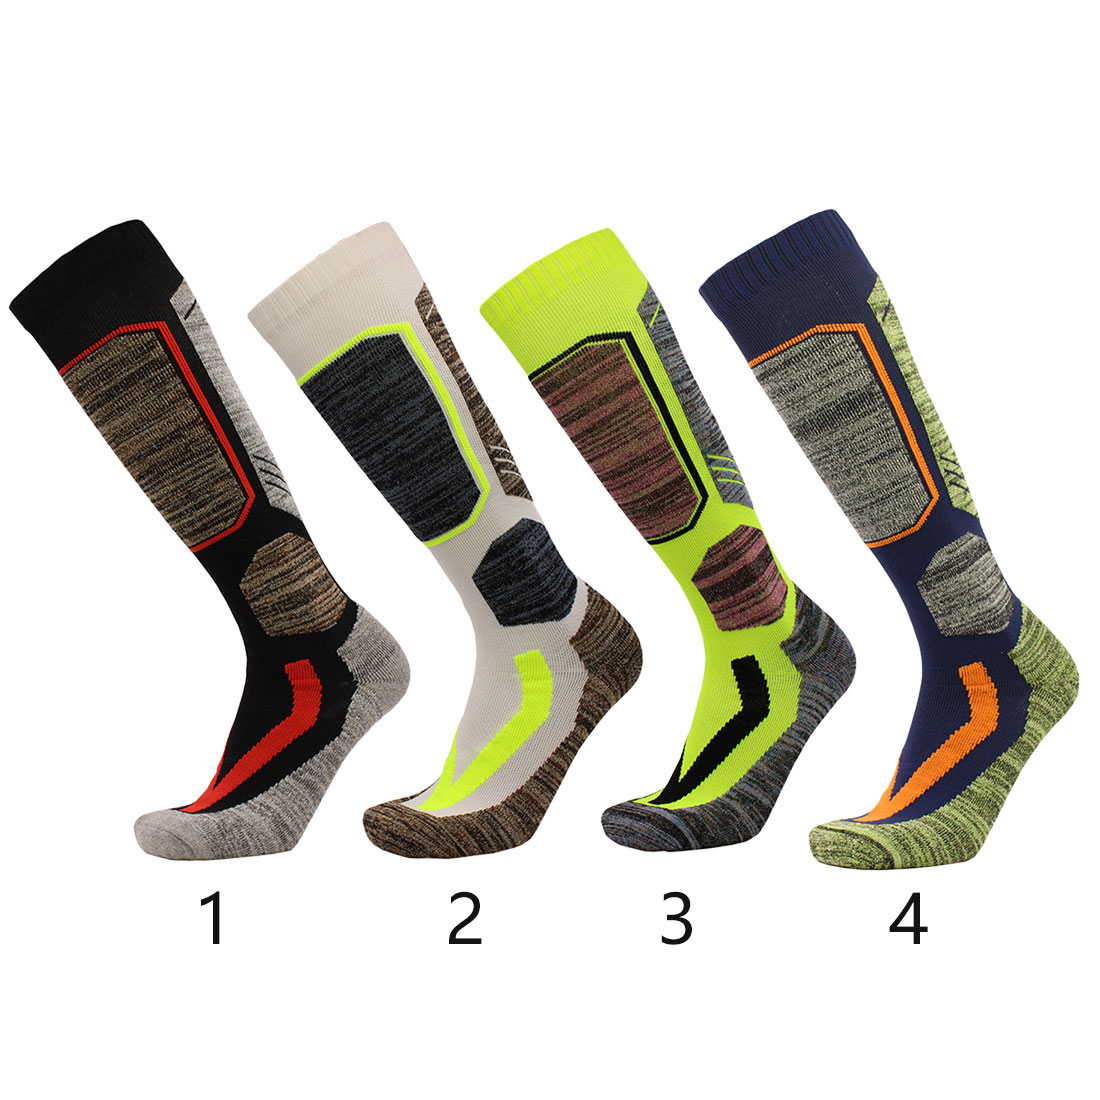 1 Pair Winter Warm Men Women Thermal Long Ski Socks Thicker Cotton Sports Snowboard Camping Hiking Climbing Socks fiets kousen